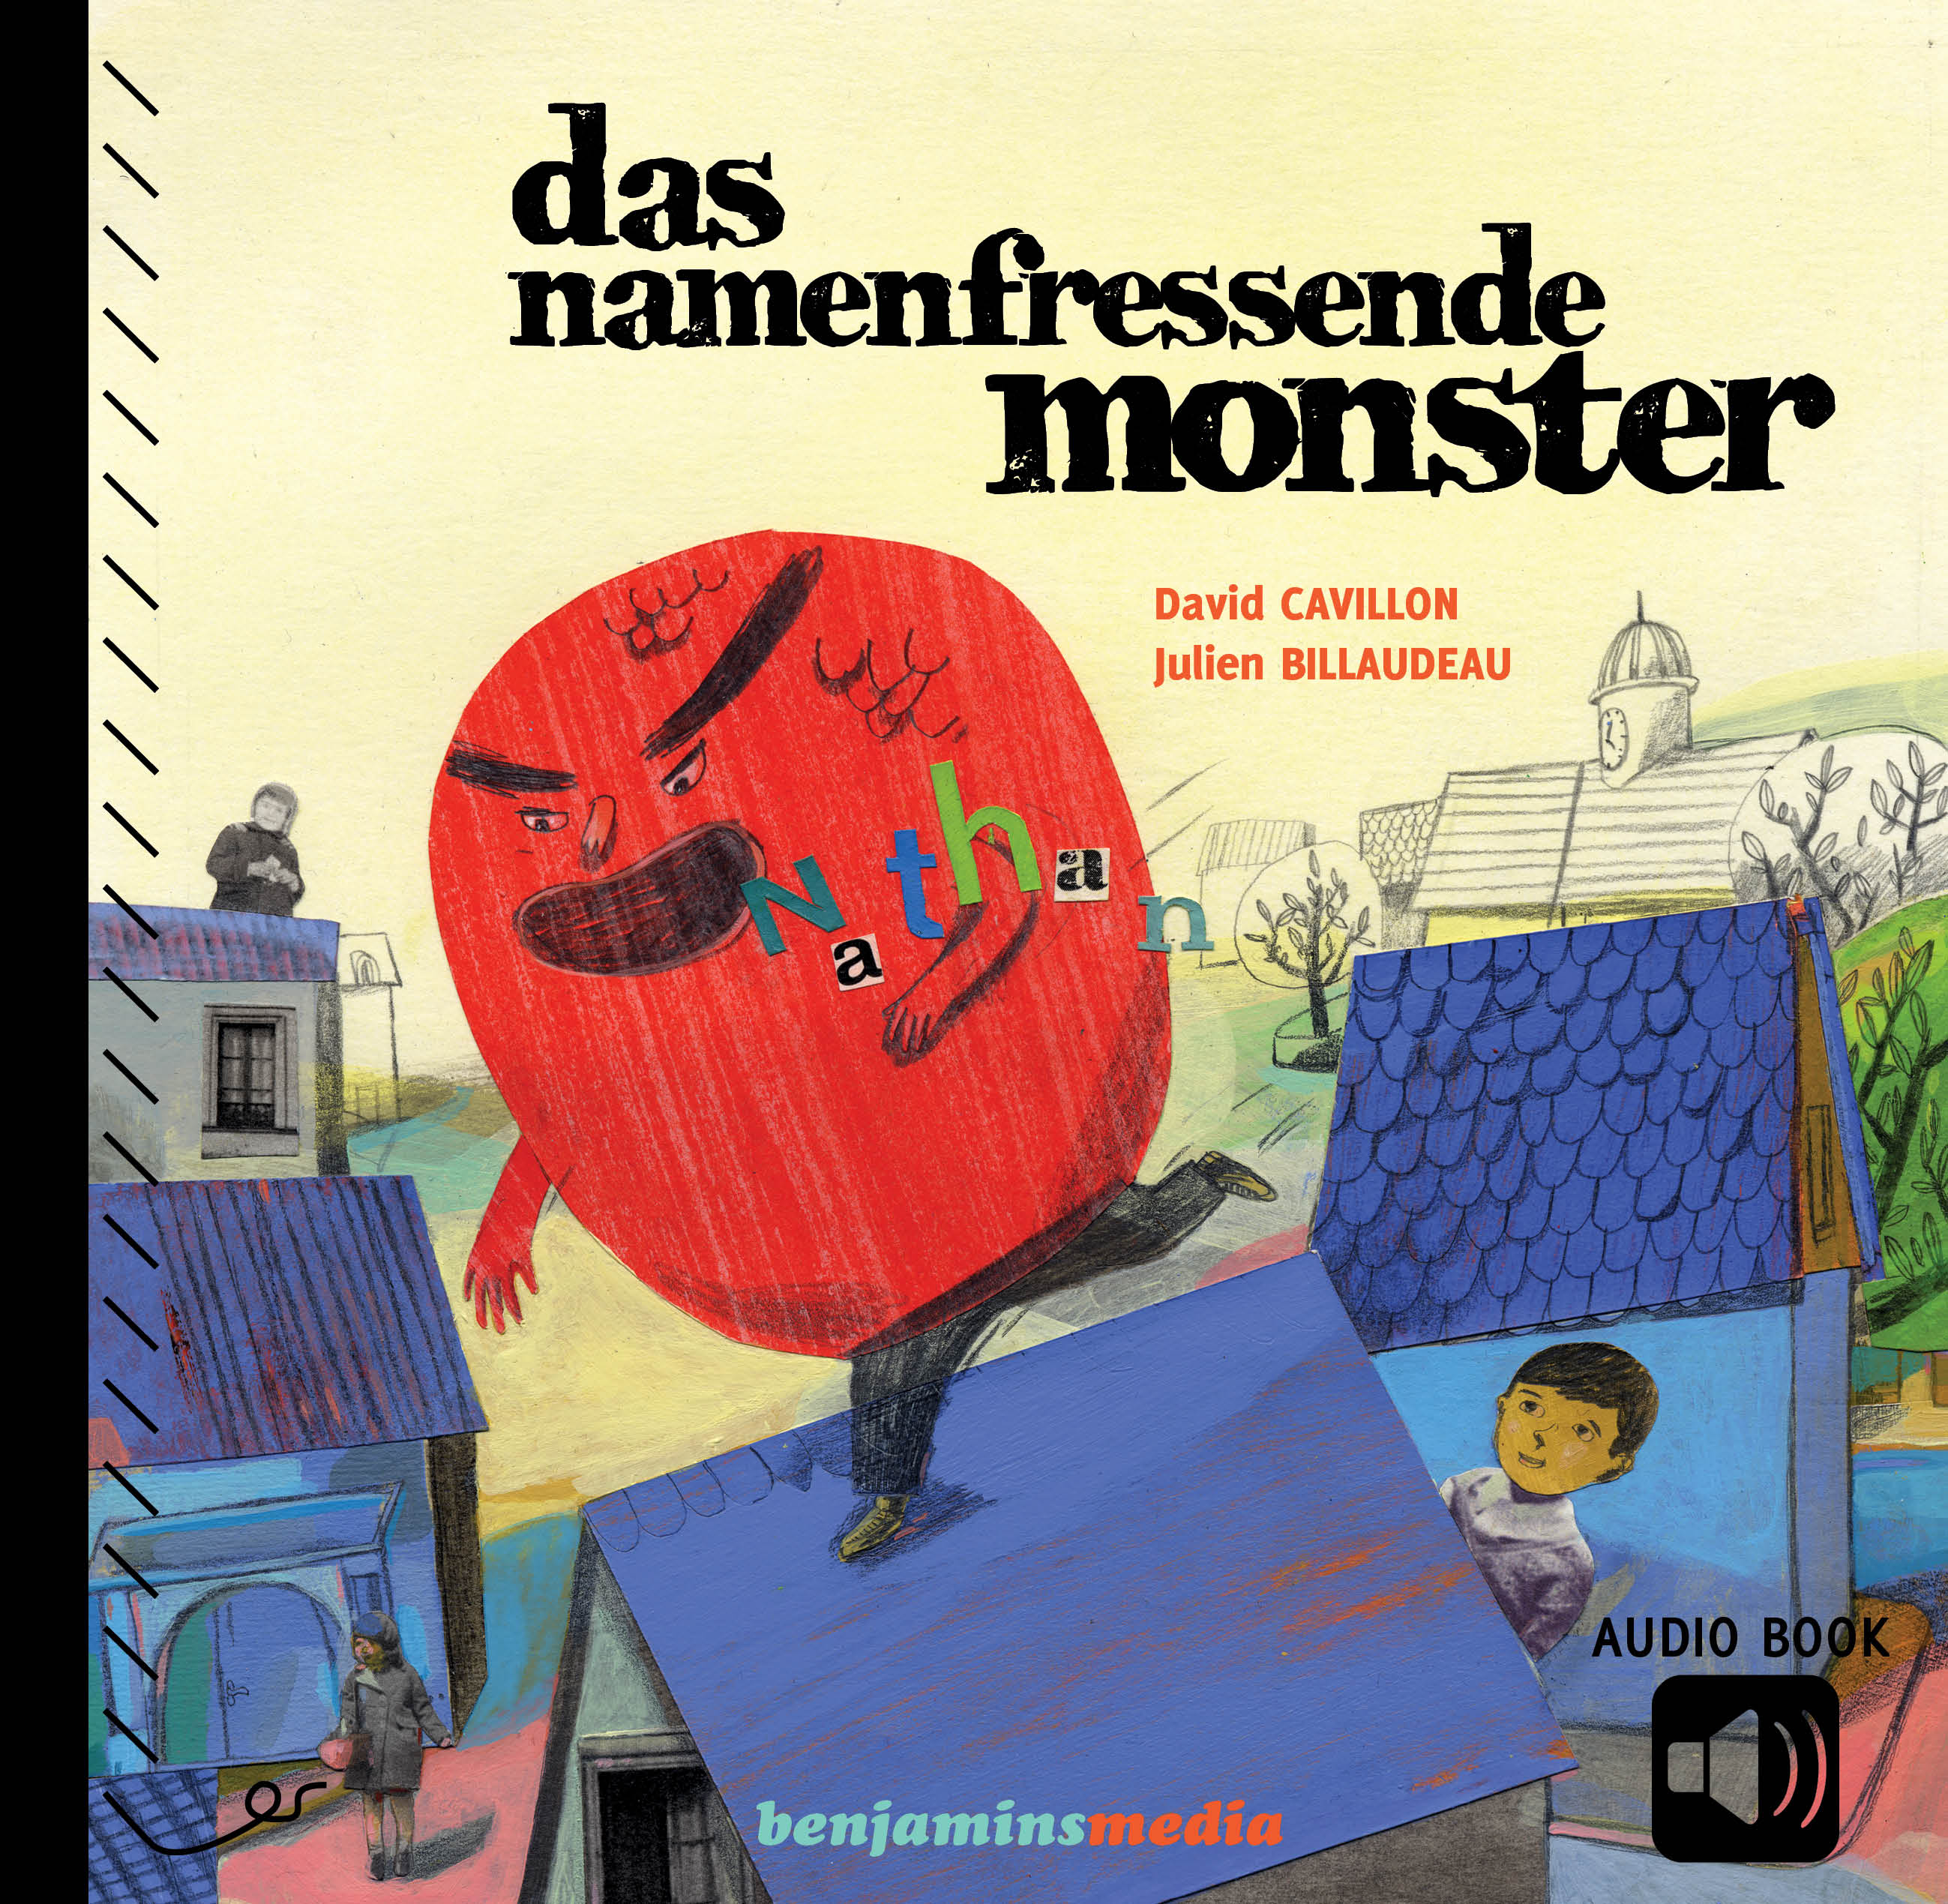 Das namenfressende Monster